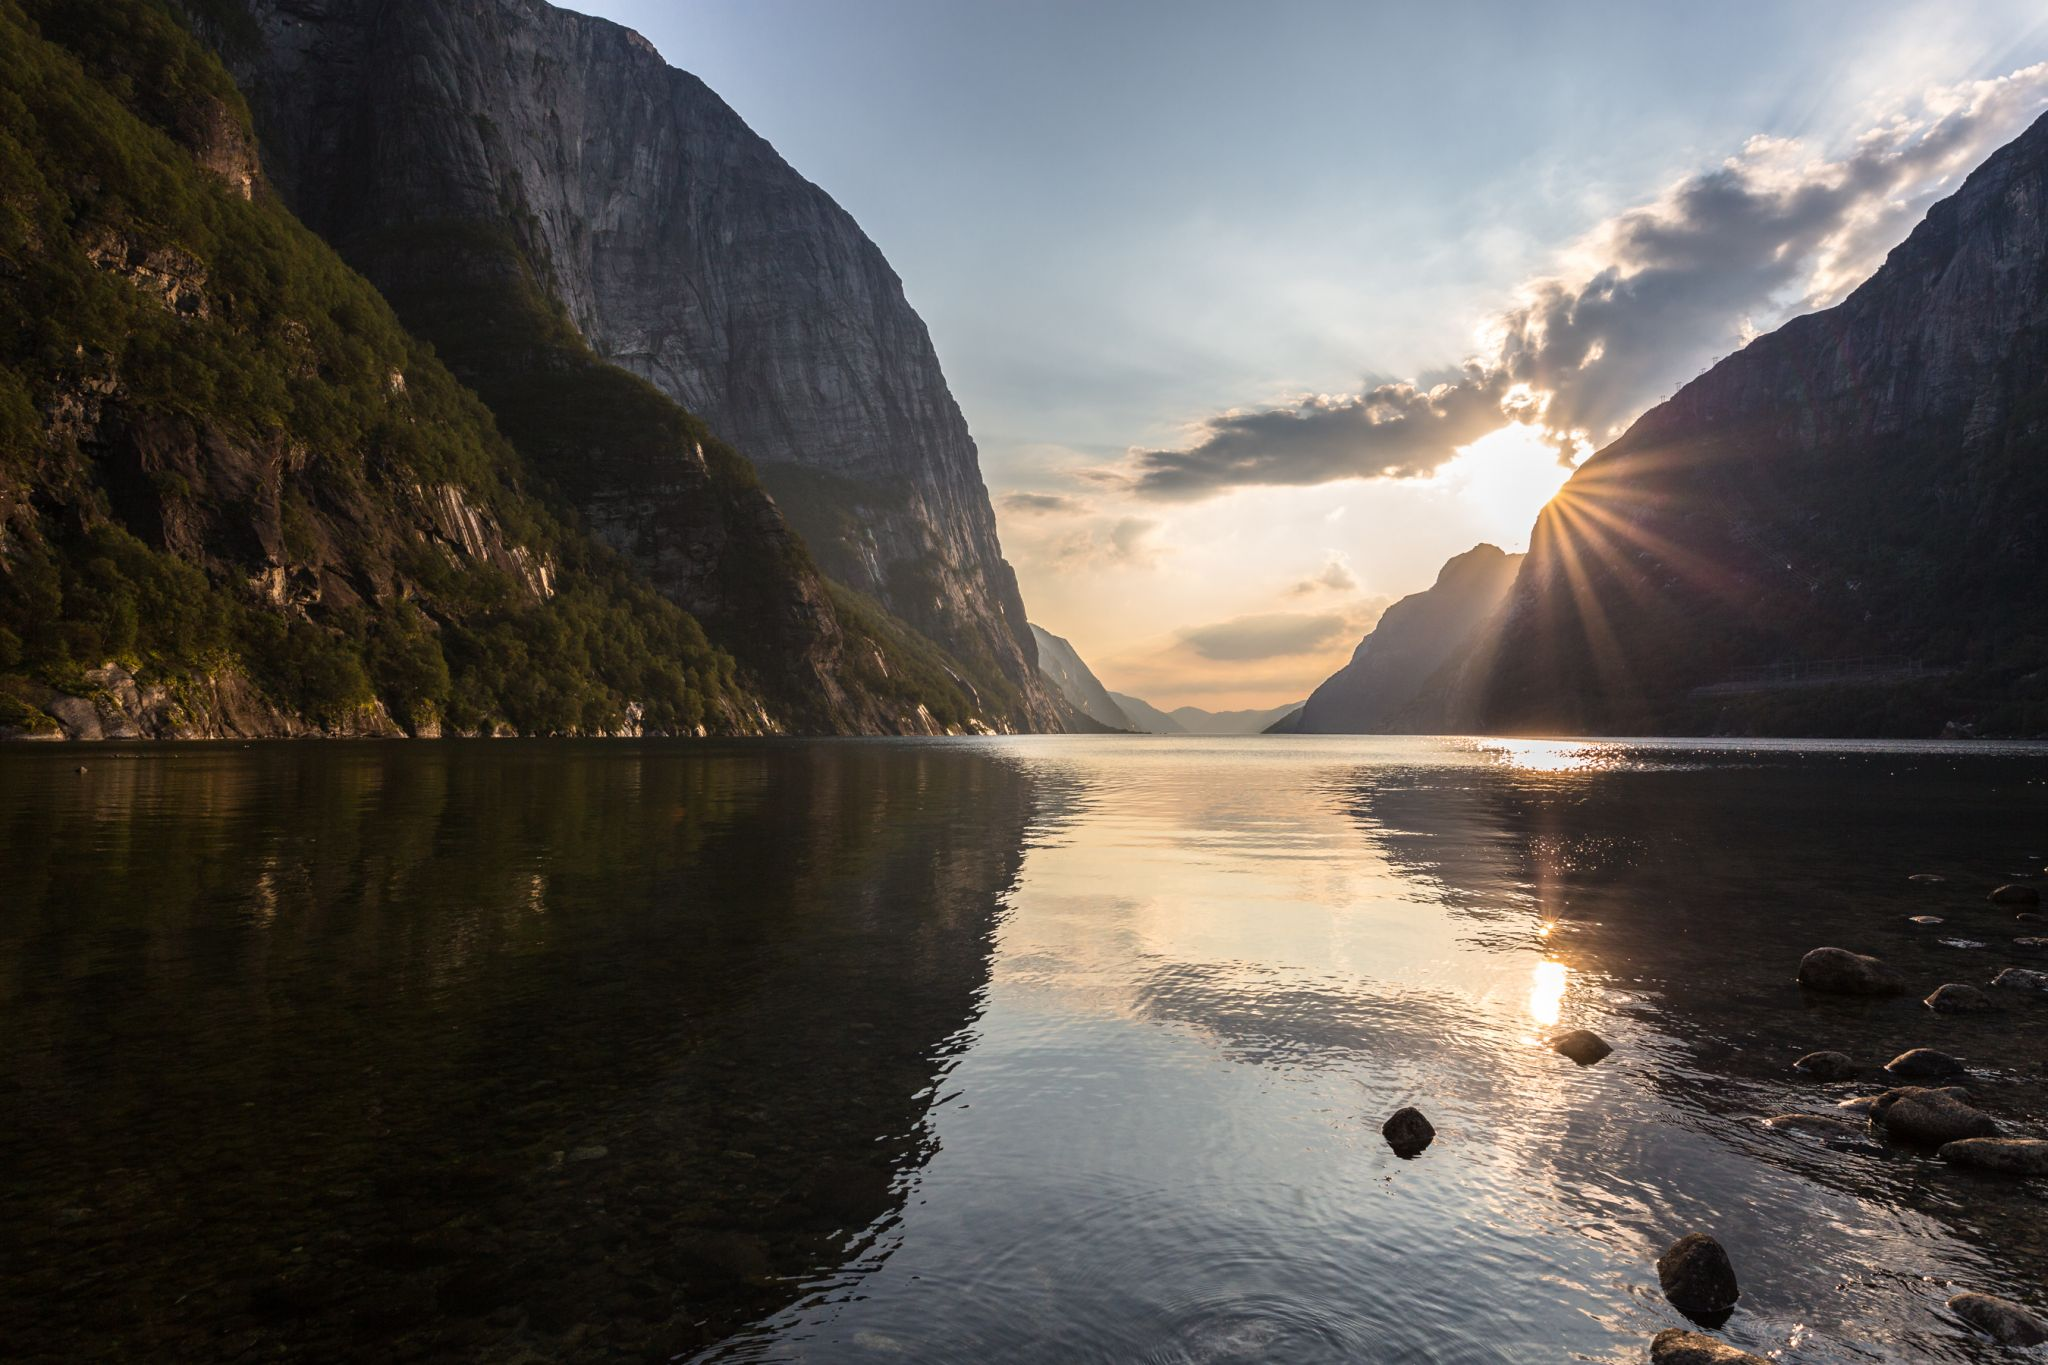 View from Lysebotn on the Lysefjord, Norway